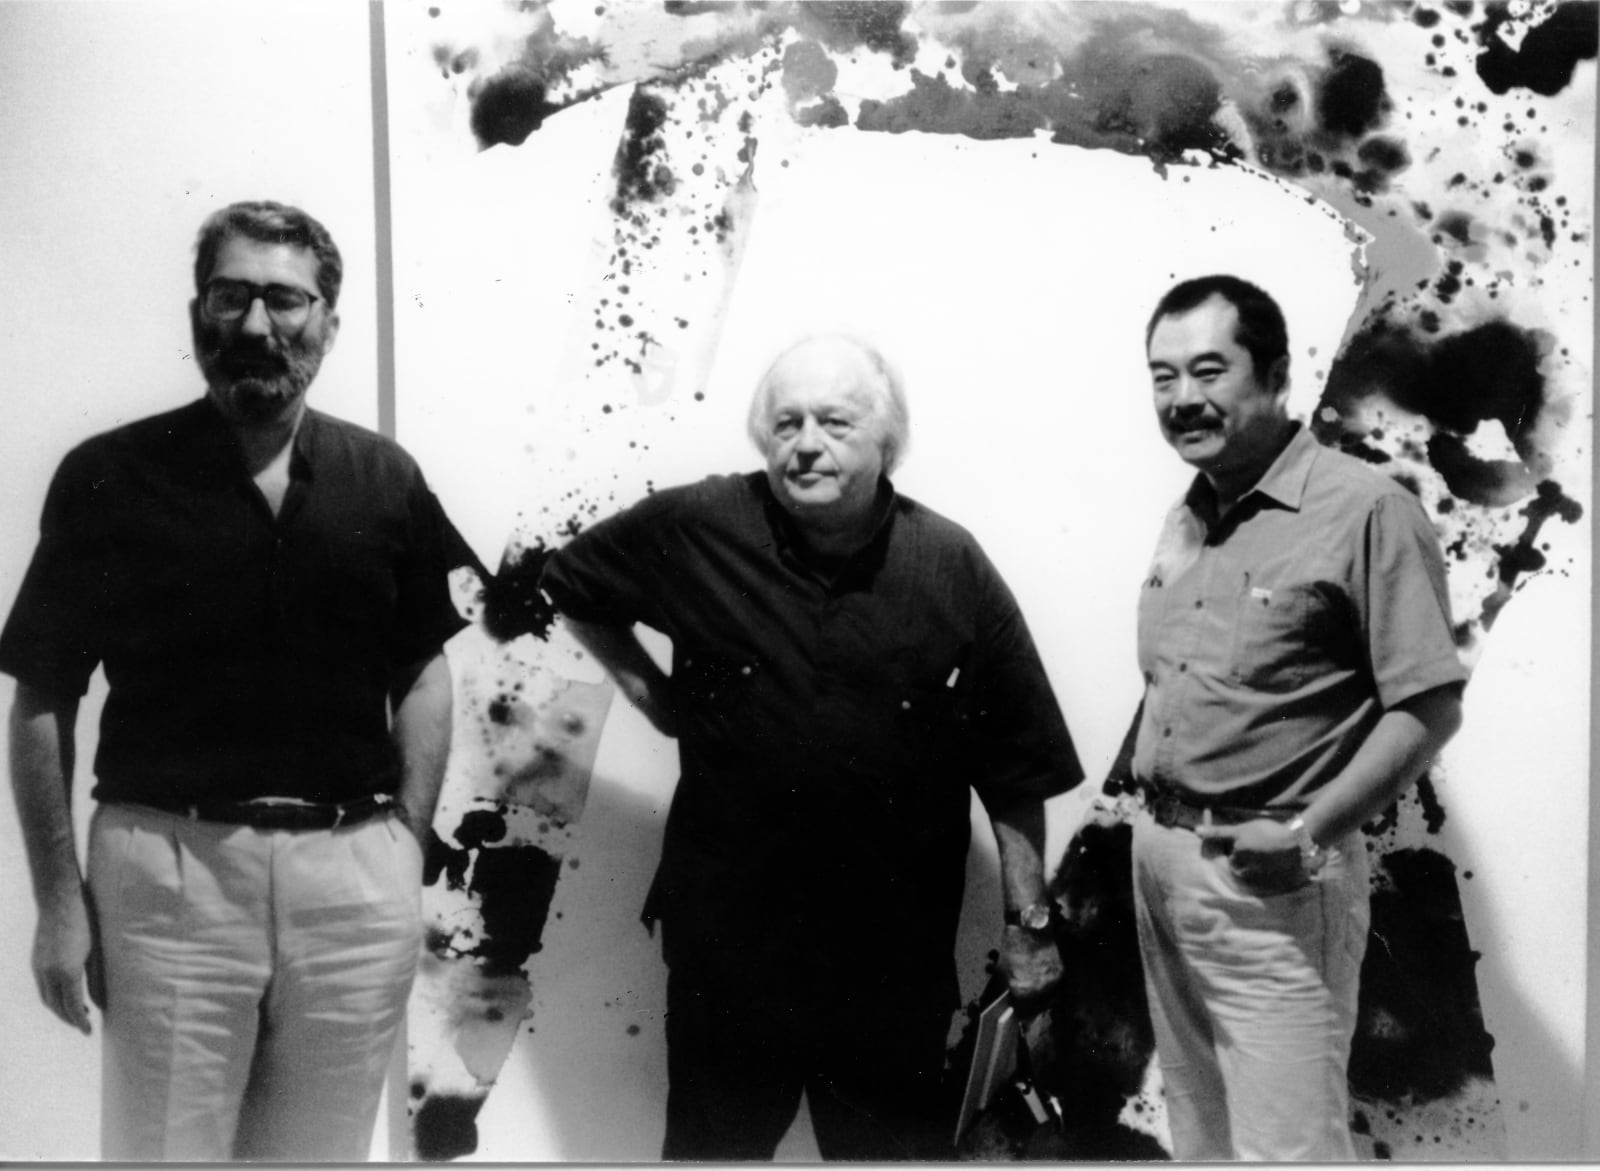 1983, G. Marconi (left), Sam Francis (middle), and Hsiao Chin 1983年馬爾各尼(左),山姆·法蘭西斯(中),蕭勤